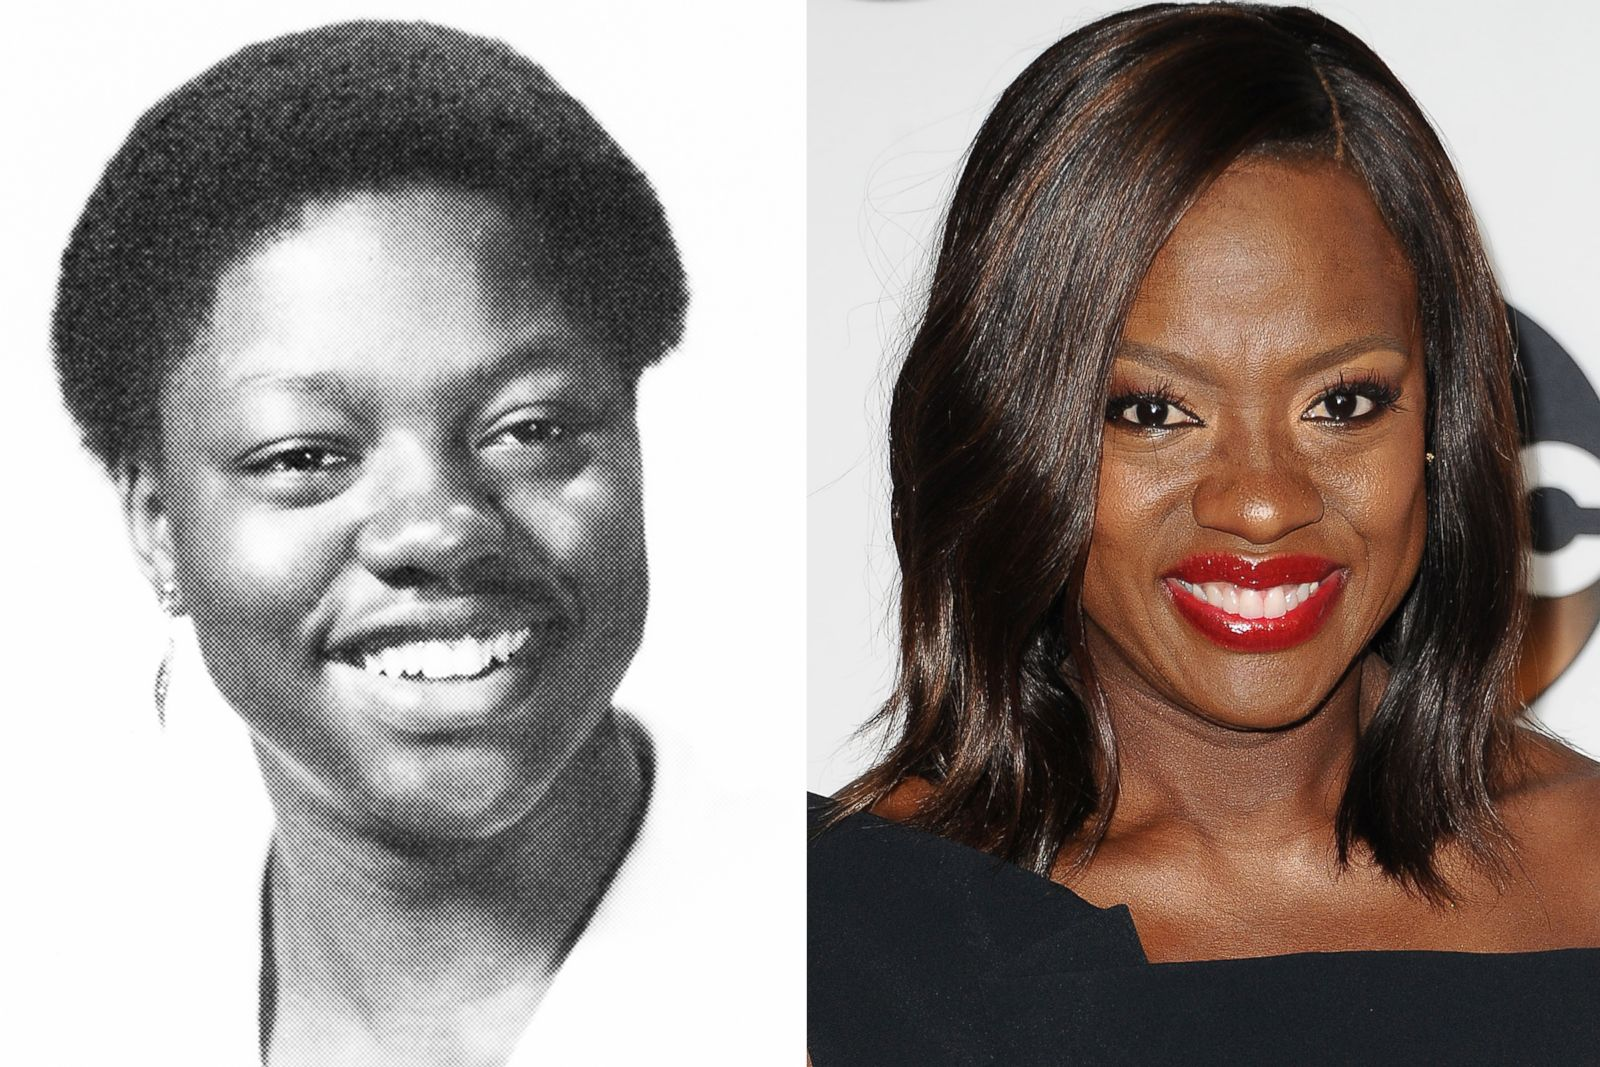 ' ' from the web at 'https://s.abcnews.com/images/Entertainment/viola-davis-ht-gty-ml-170810_3x2_1600.jpg'